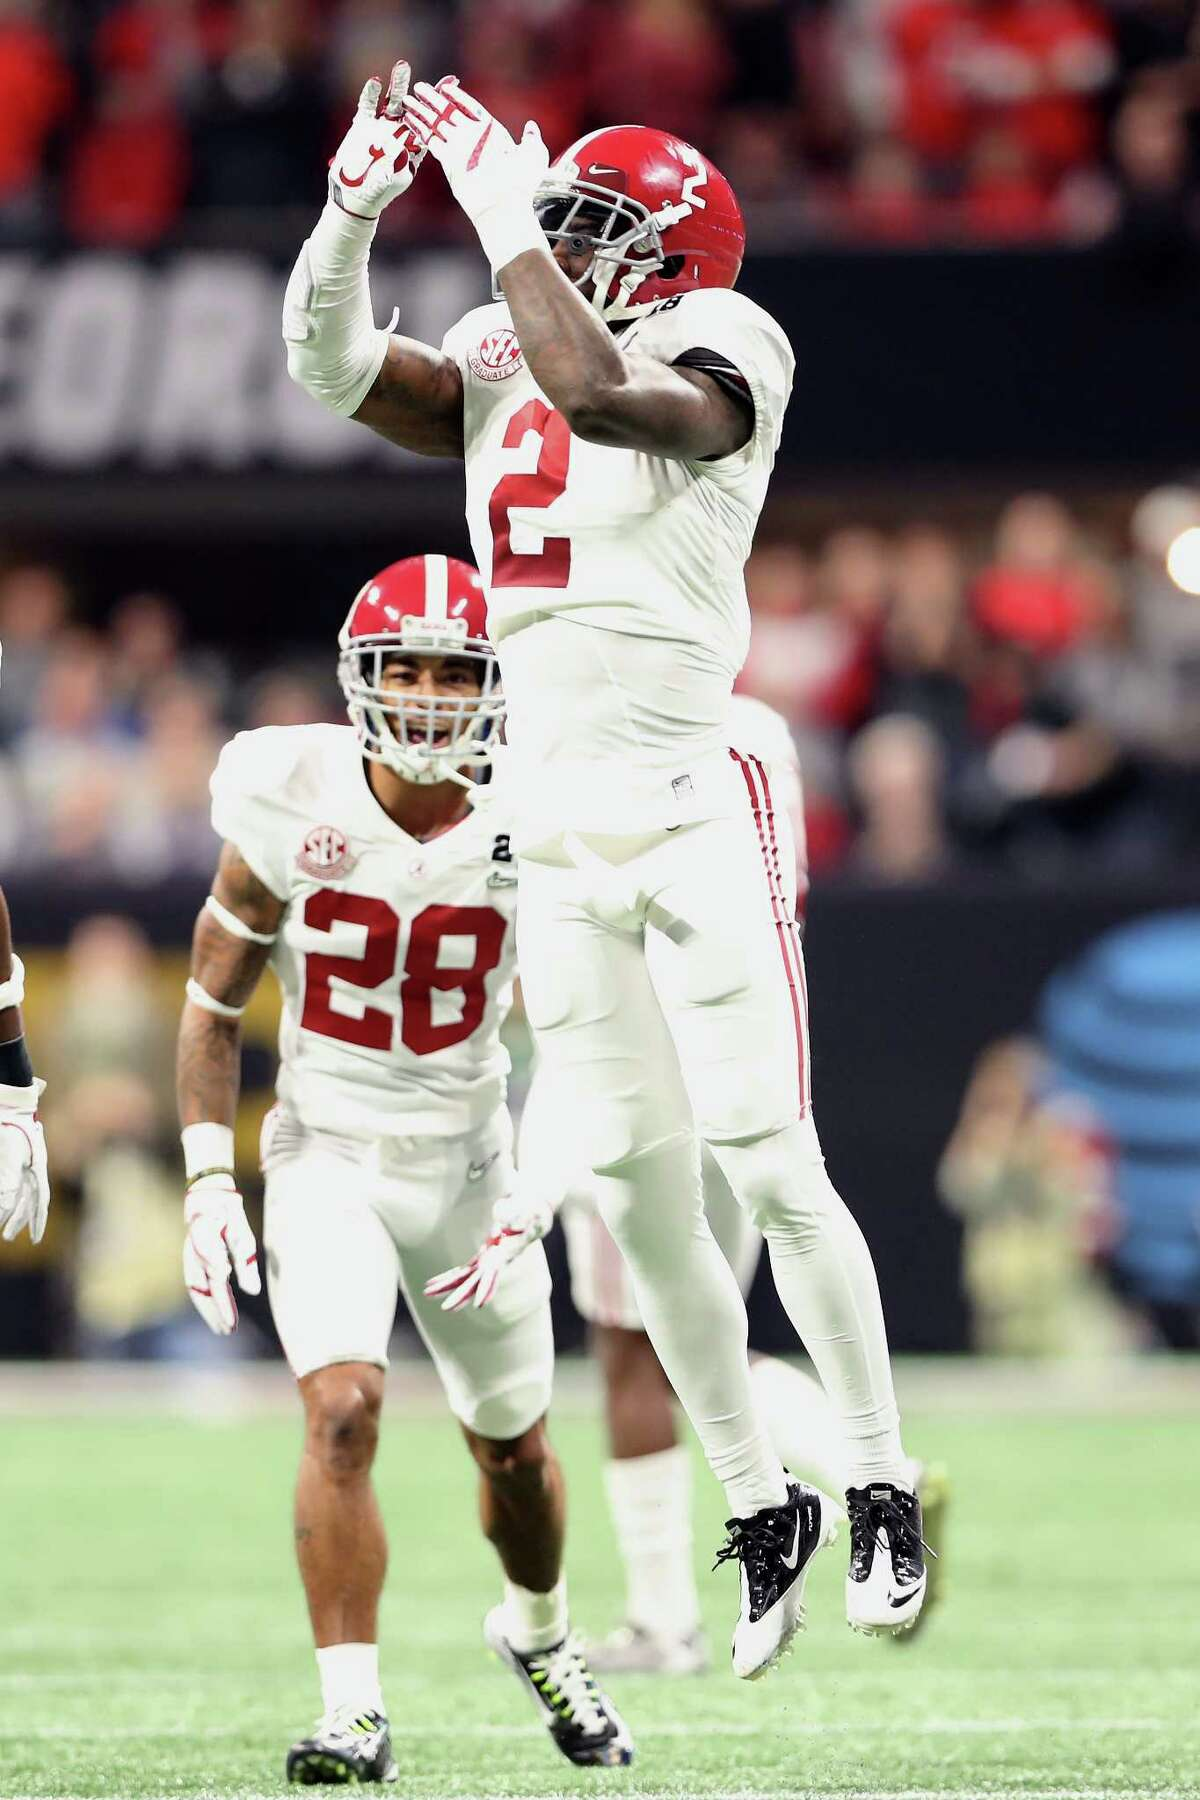 ATLANTA, GA - JANUARY 08: Tony Brown #2 of the Alabama Crimson Tide celebrates an interception against the Georgia Bulldogs during the first quarter in the CFP National Championship presented by AT&T at Mercedes-Benz Stadium on January 8, 2018 in Atlanta, Georgia. (Photo by Christian Petersen/Getty Images)